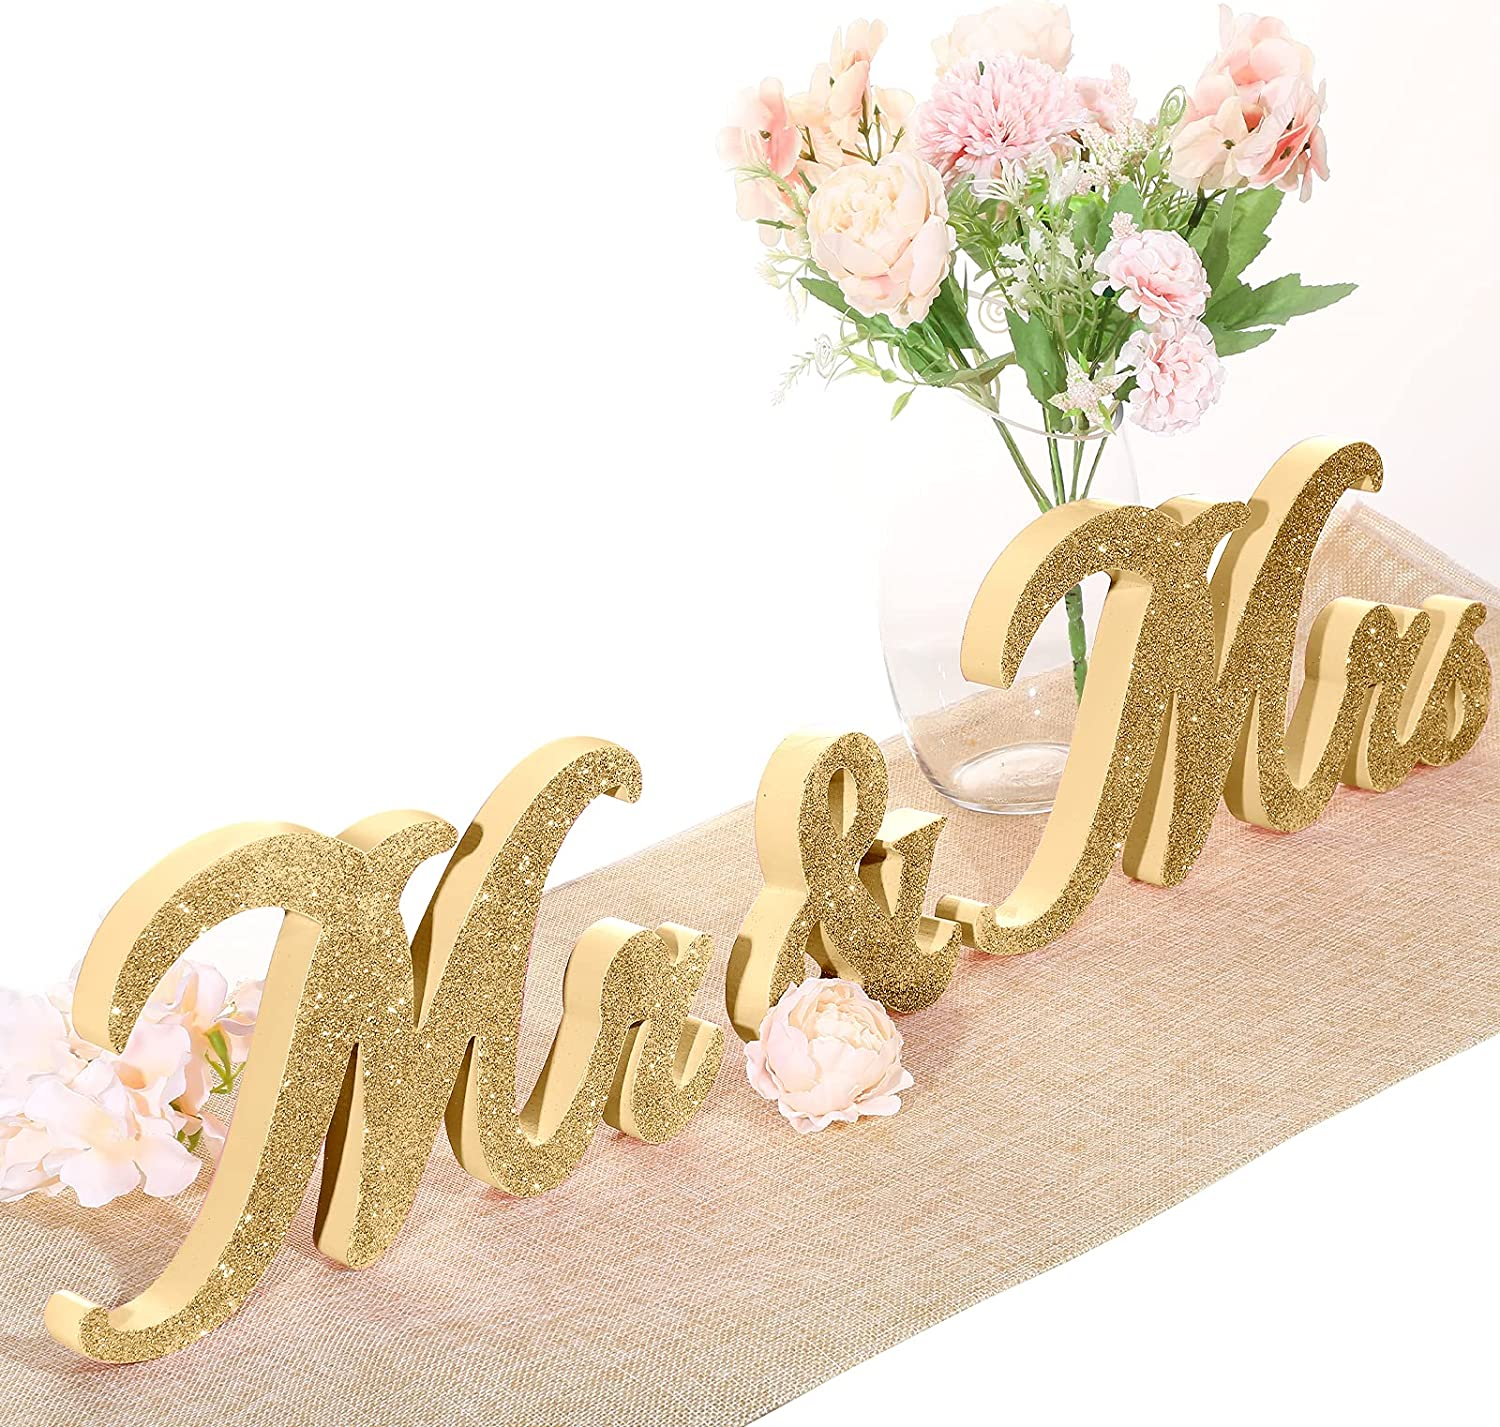 Mr and Mrs Sign Vintage Style Mr and Mrs Sign Wooden Mr and Mrs Letter Glitter Mr and Mrs Letters Wedding Sweetheart Table Decorations for Wedding Party Photo Prop Table Decoration (Gold)